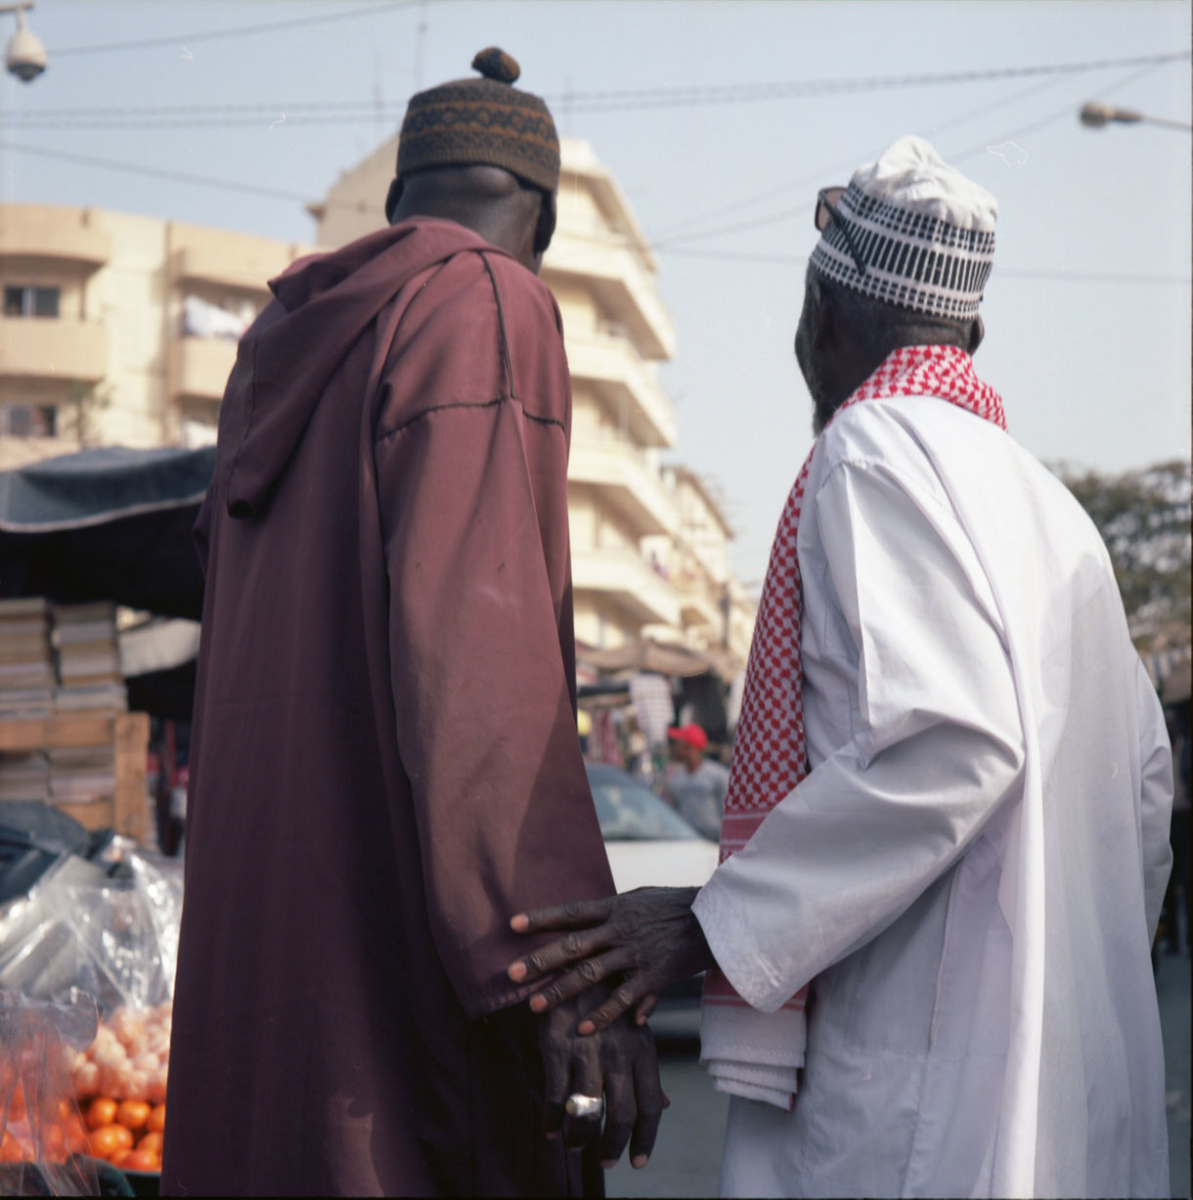 1 Untitled, Dakar, SEN, 2018